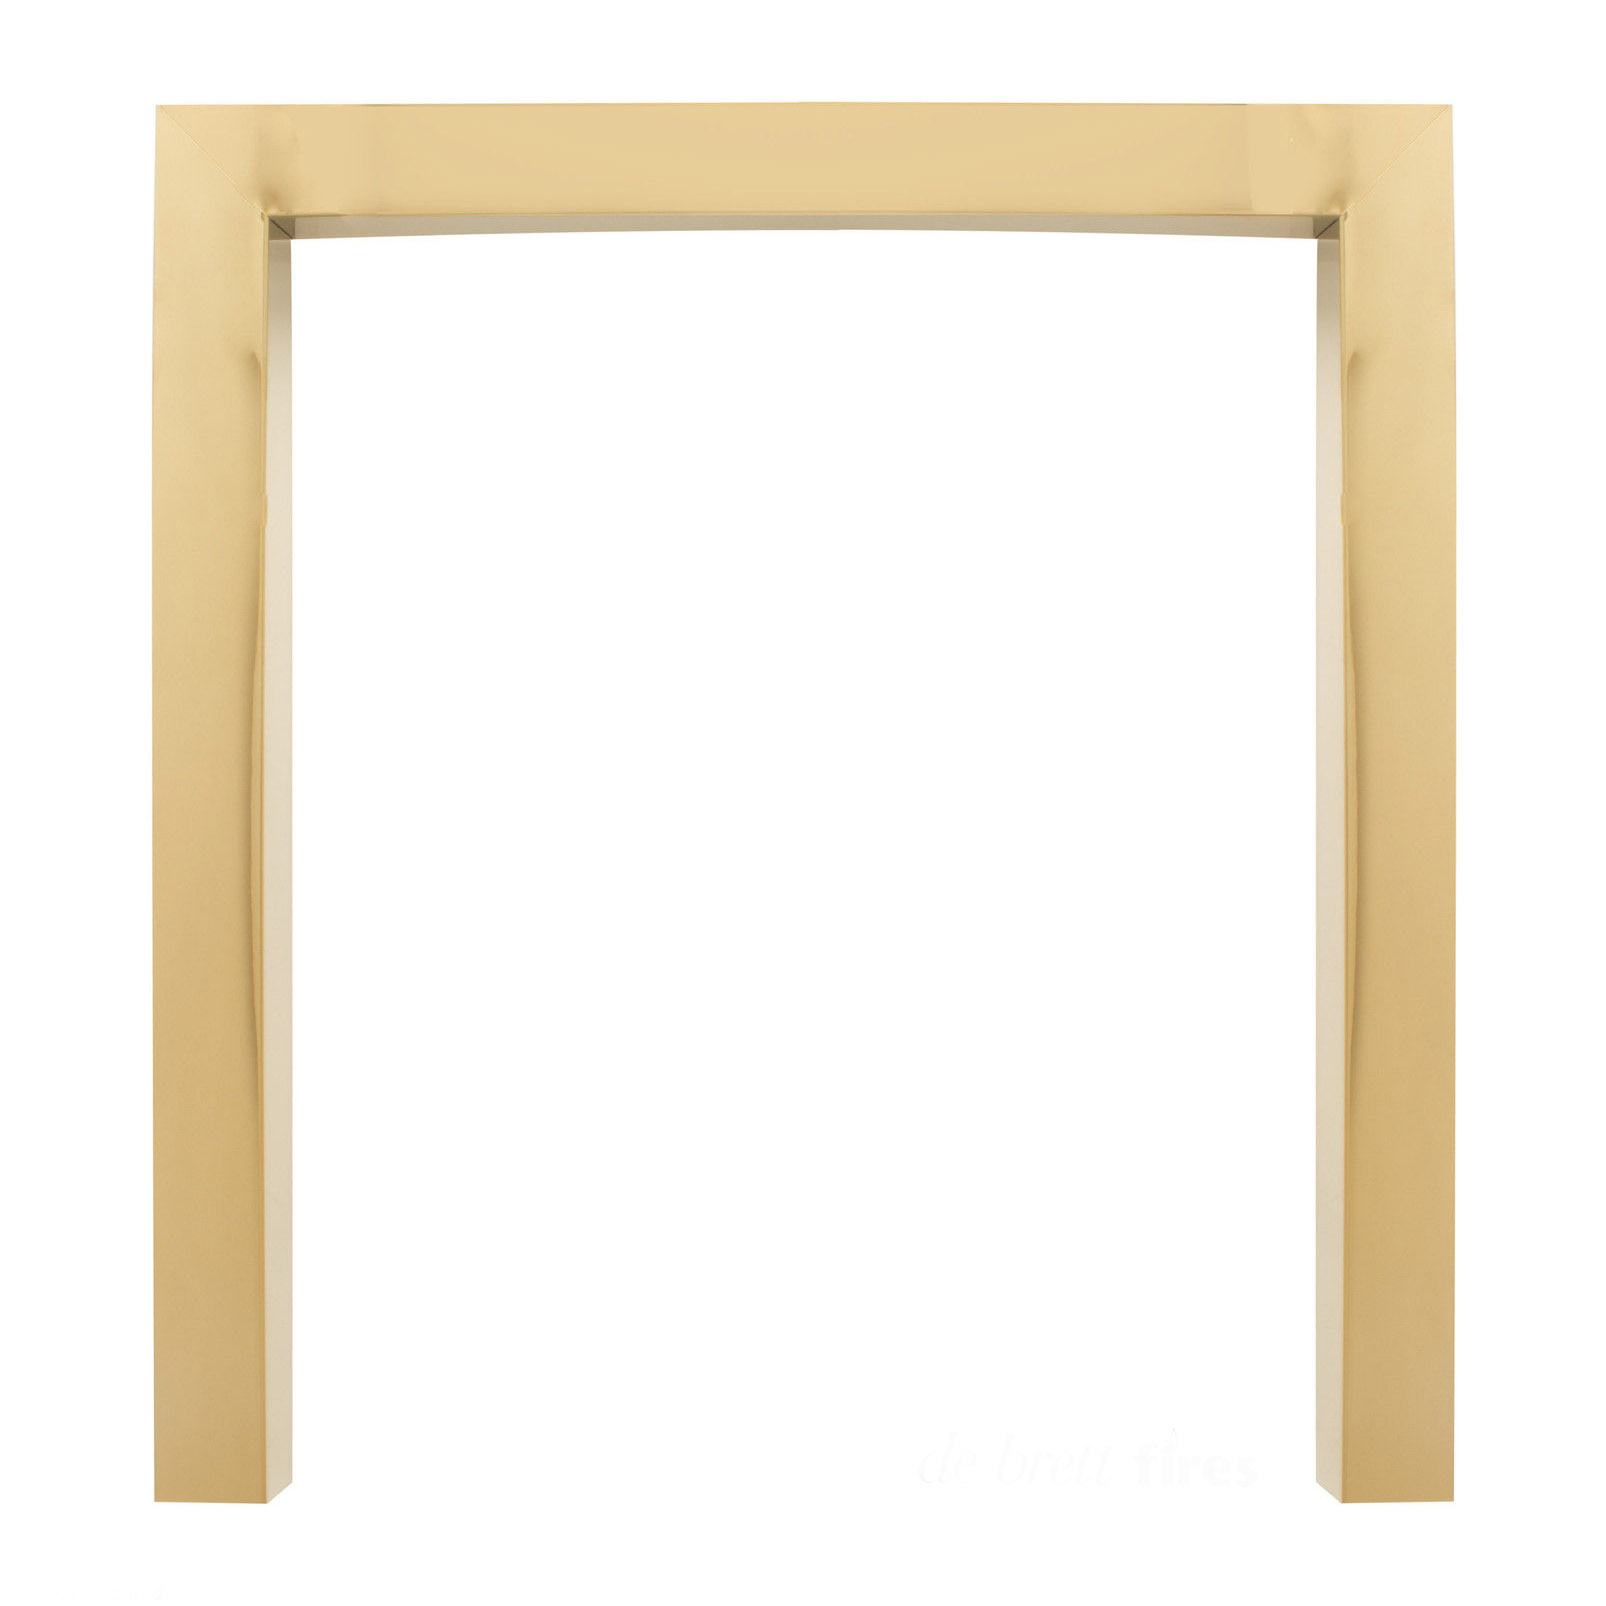 The 18 Inch 46cm Replacement Fire Trim In Brass Black